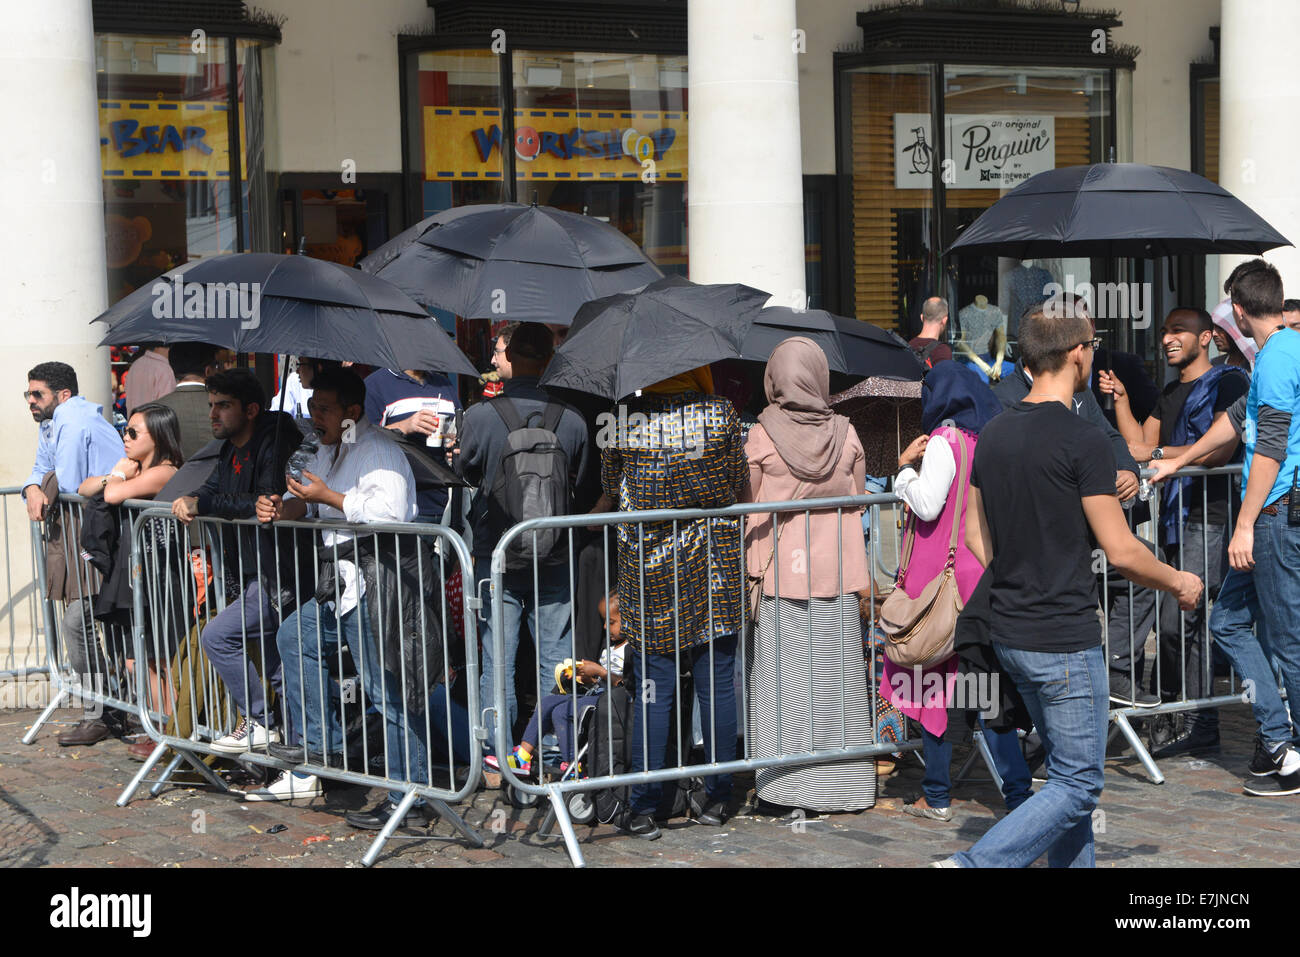 Covent Garden, London, UK. 19th September 2014. A very large queue waits in the sunshine to buy the new iPhone 6 Stock Photo